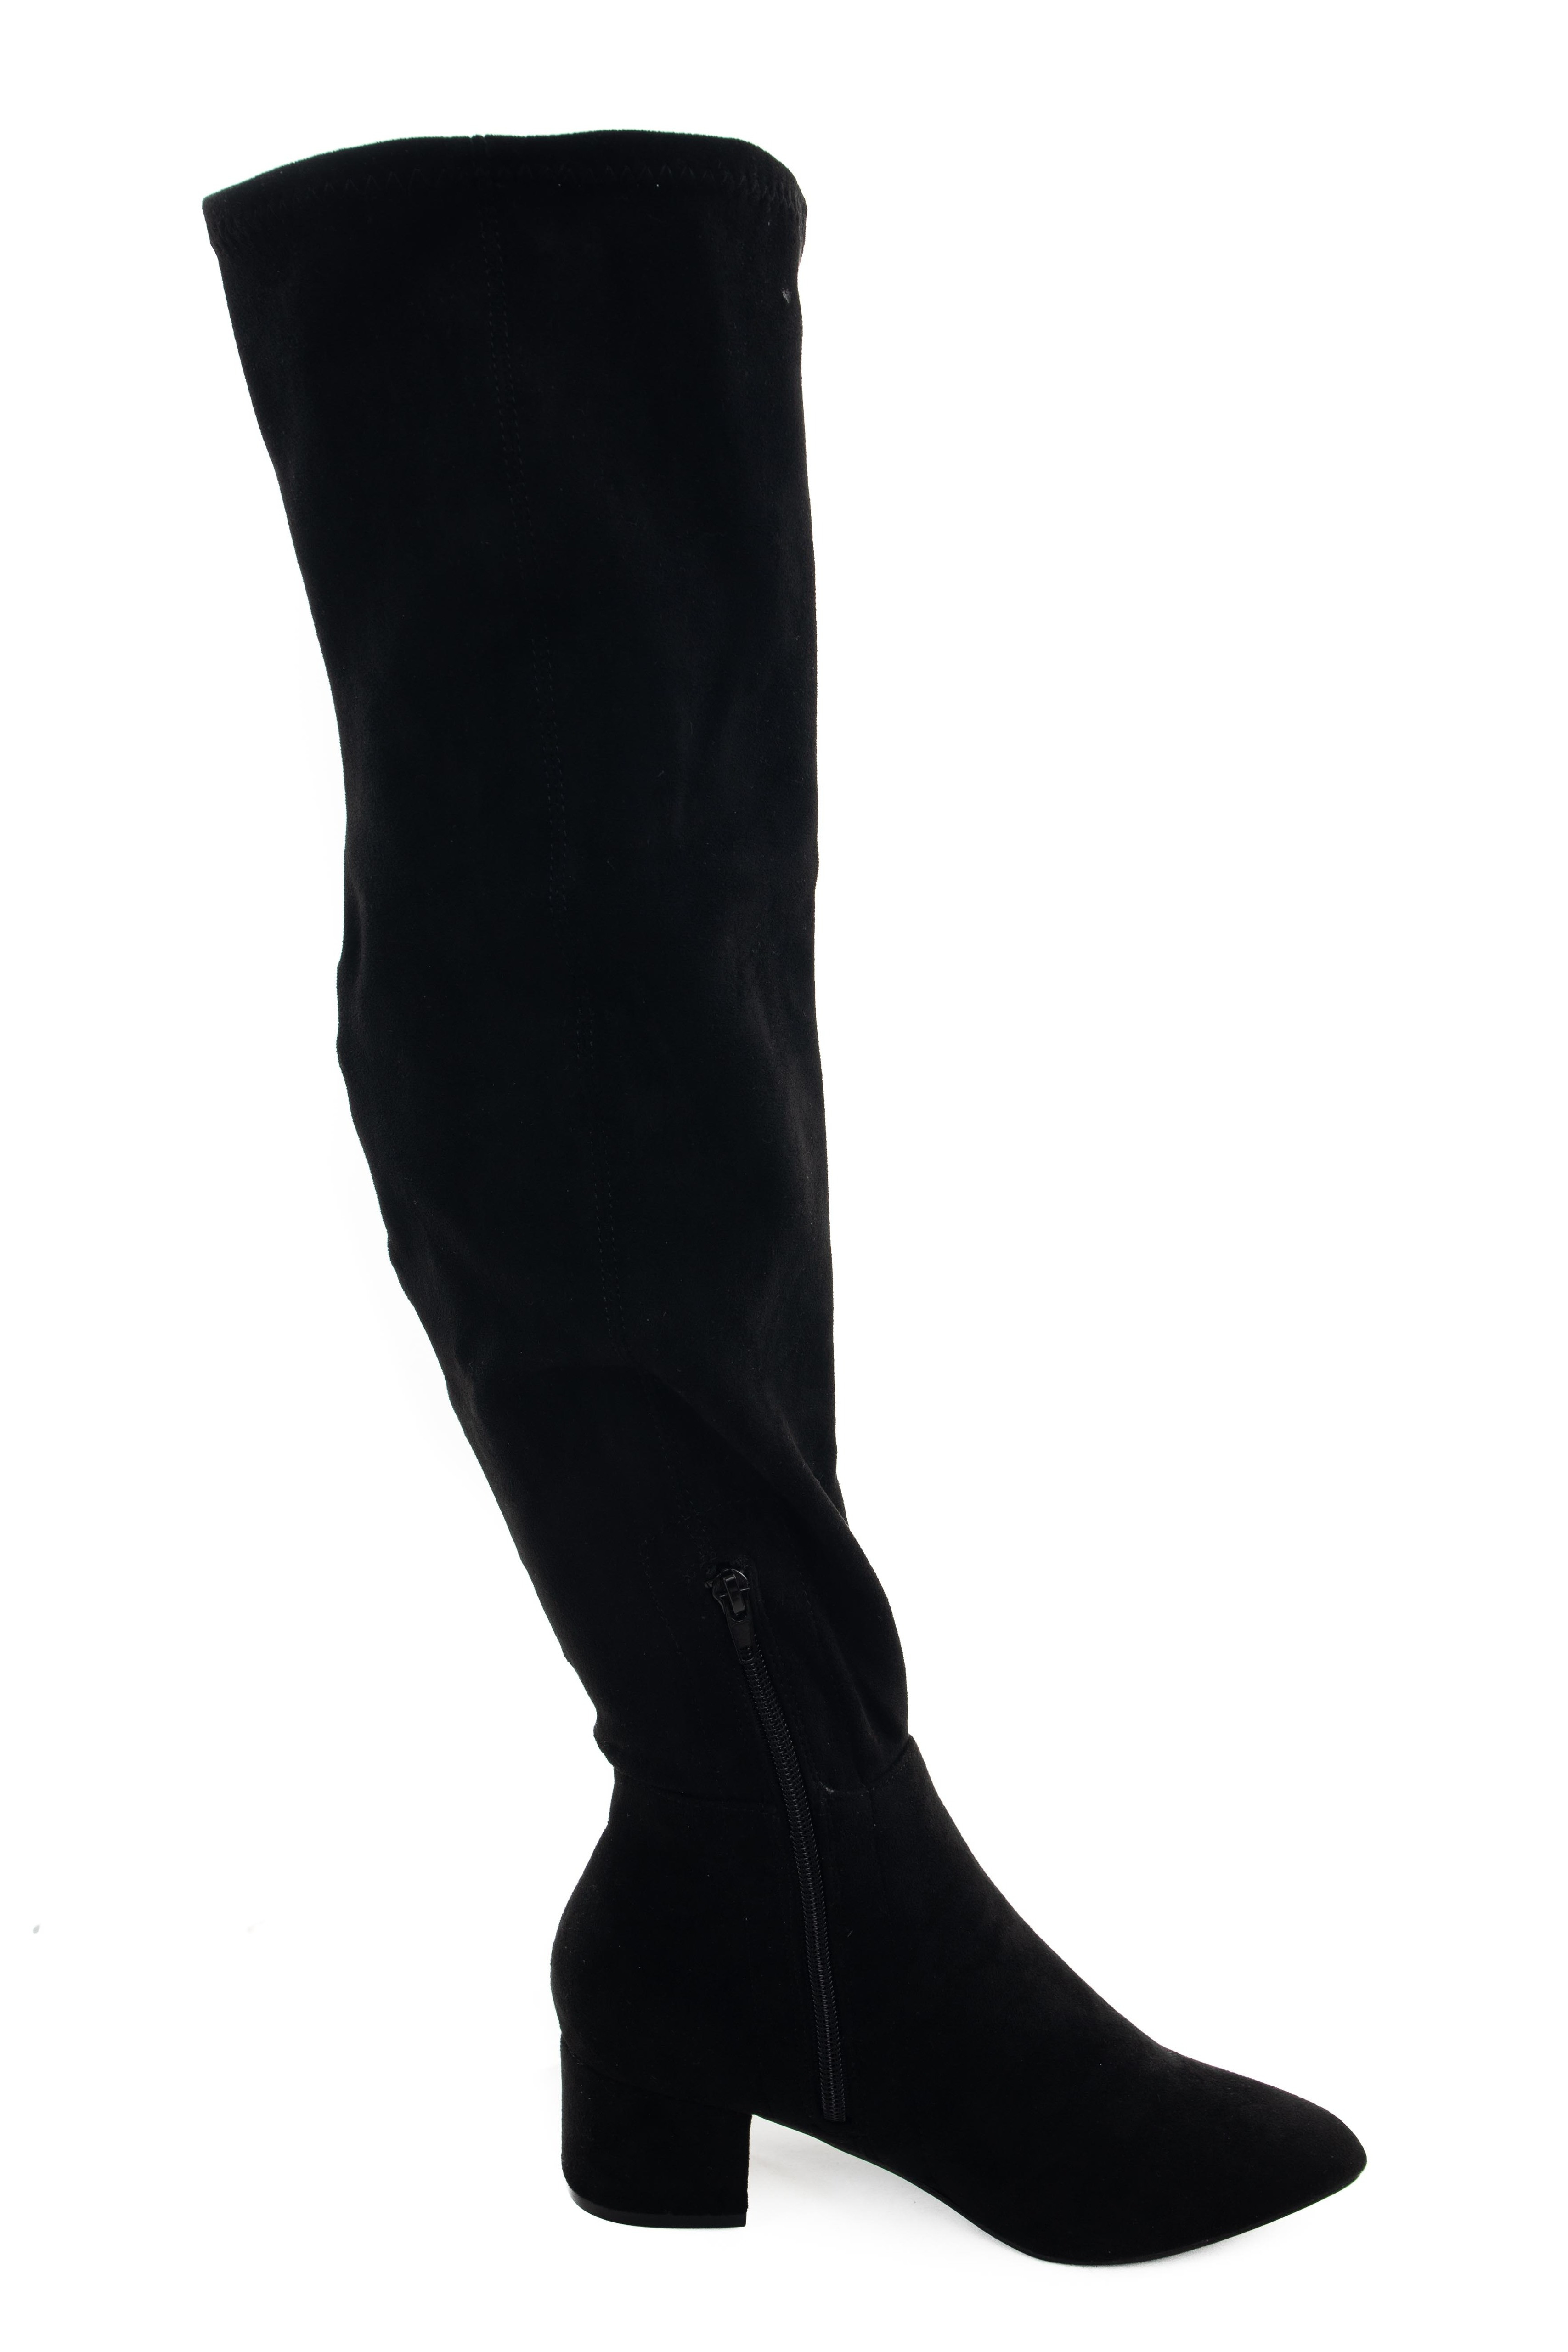 Black Faux Suede Knee High Chunky Heel Boots